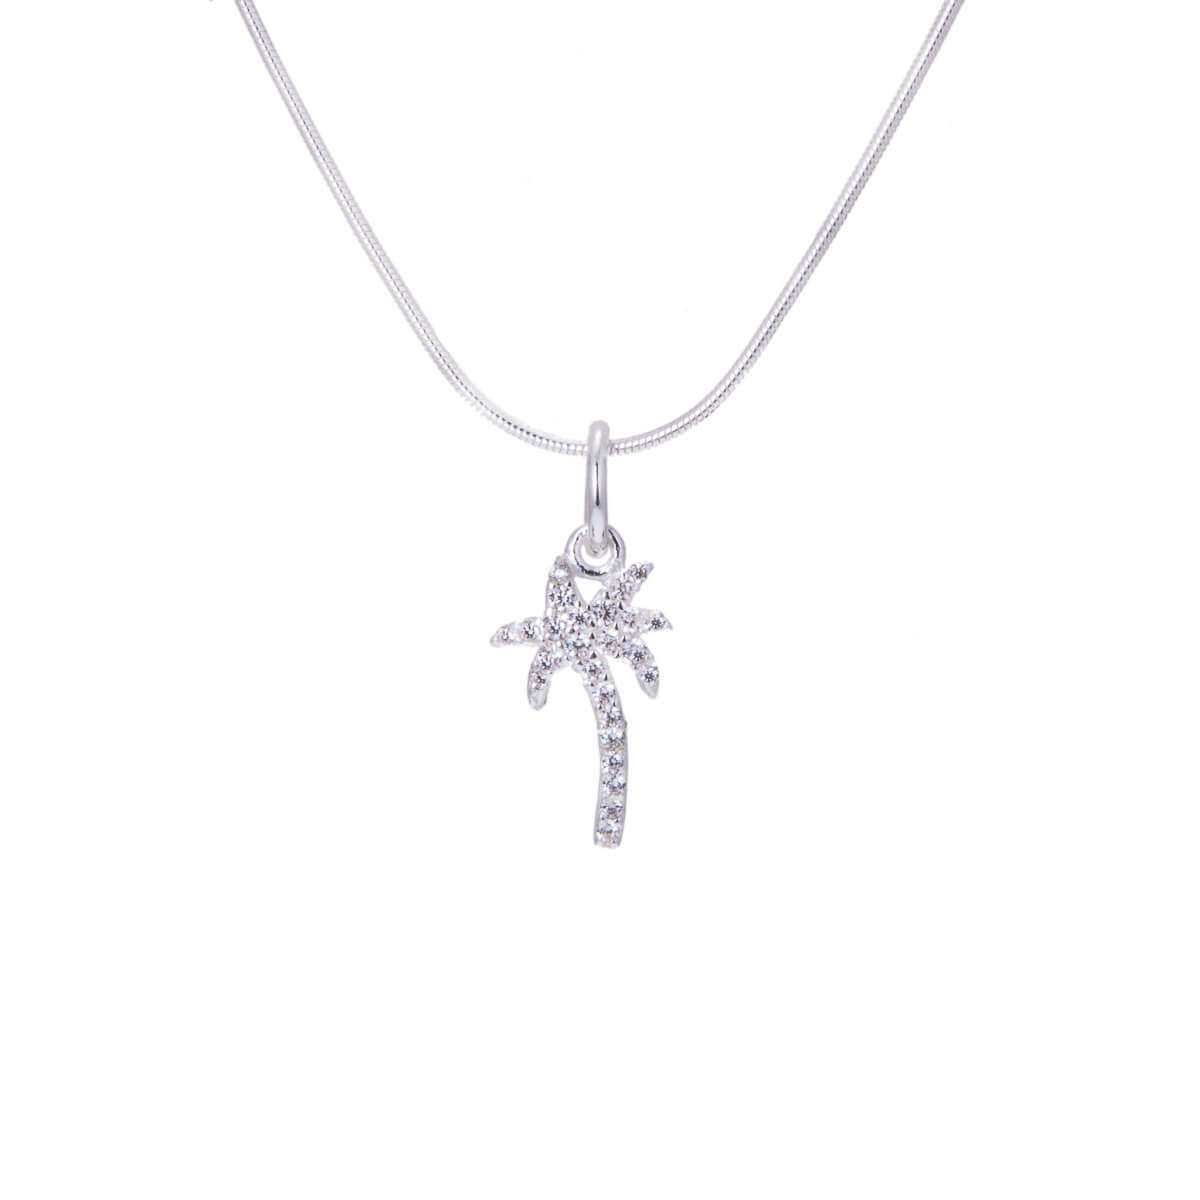 Sterling Silver CZ Encrusted Palm Tree Necklace - 14 - 22 Inches